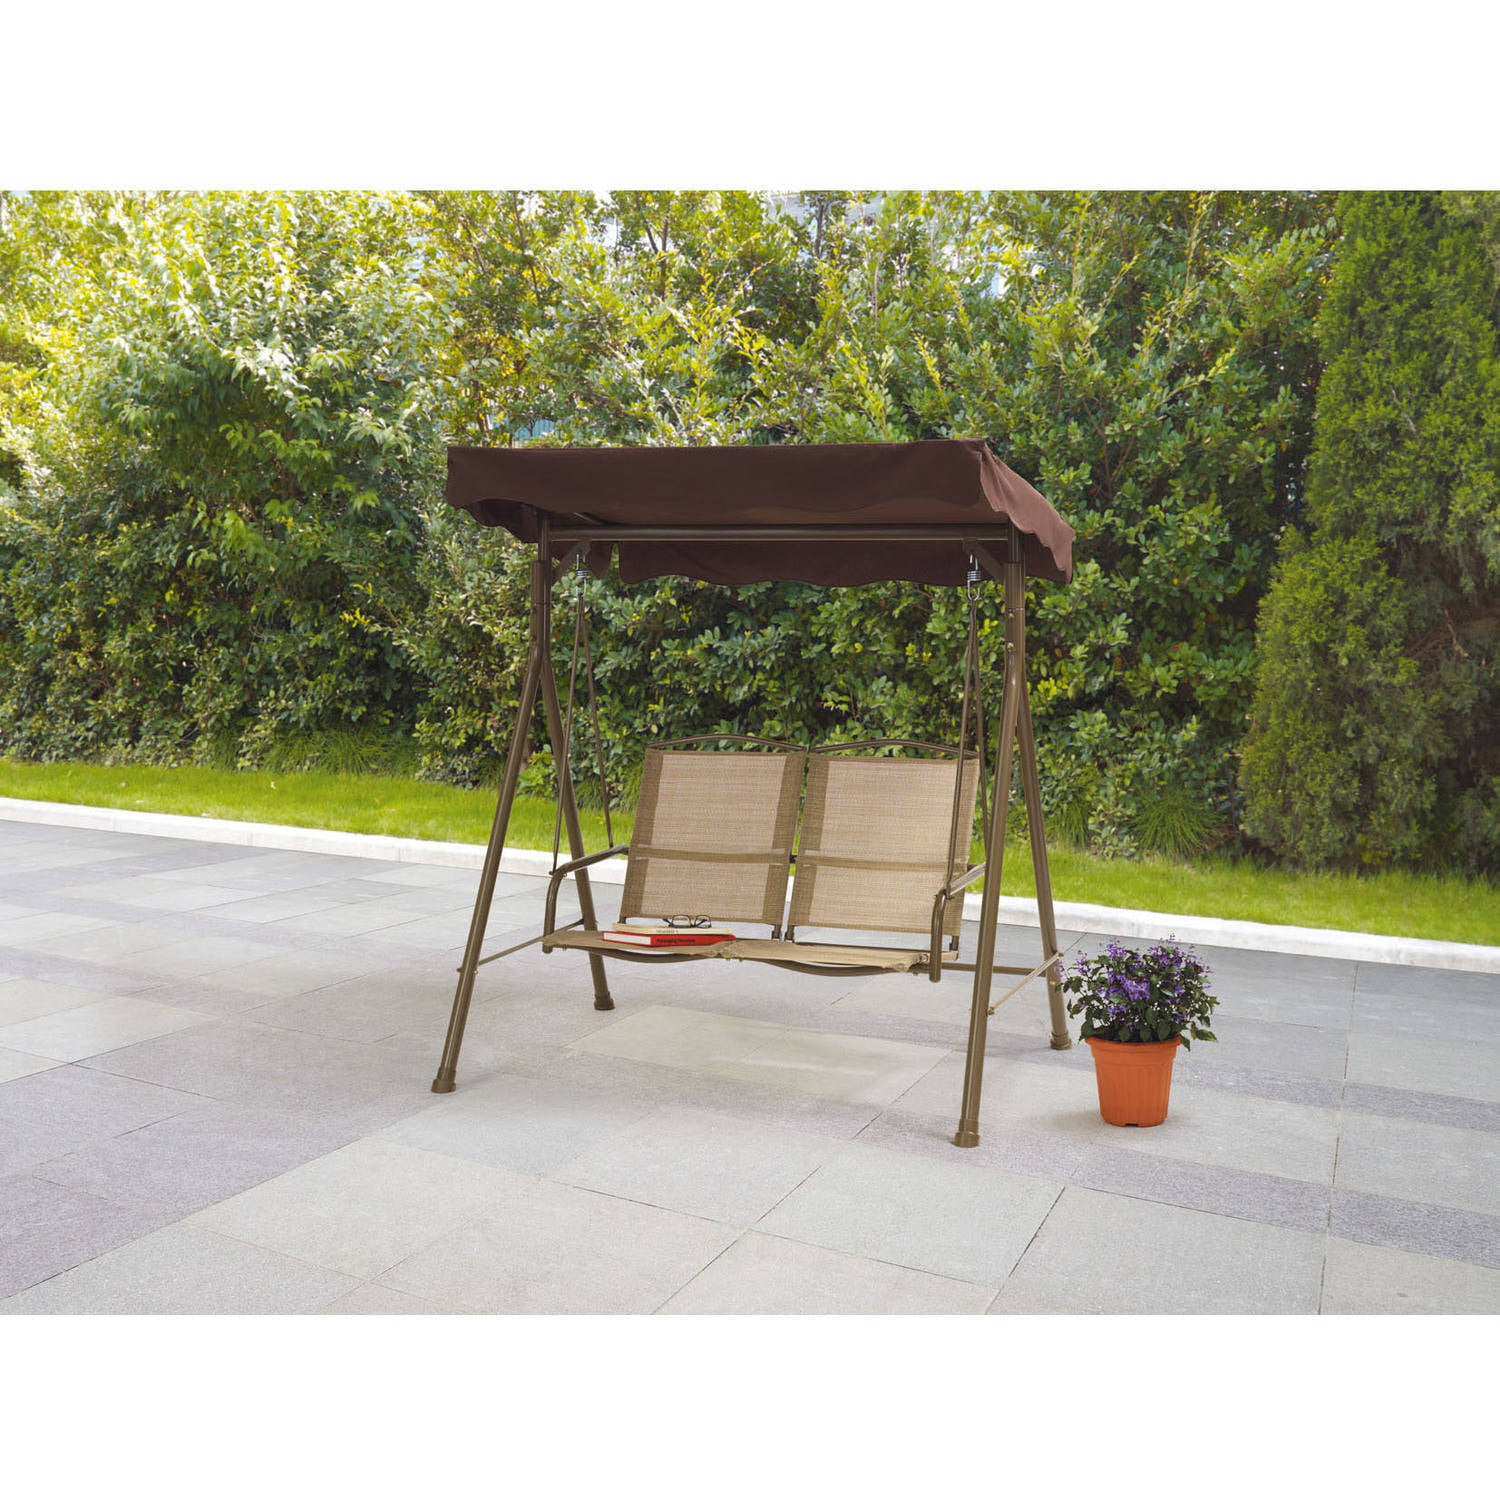 Costway Outdoor Patio Swing Porch Rocker Glider Bench Loveseat Garden Seat  Steel   Walmart.com